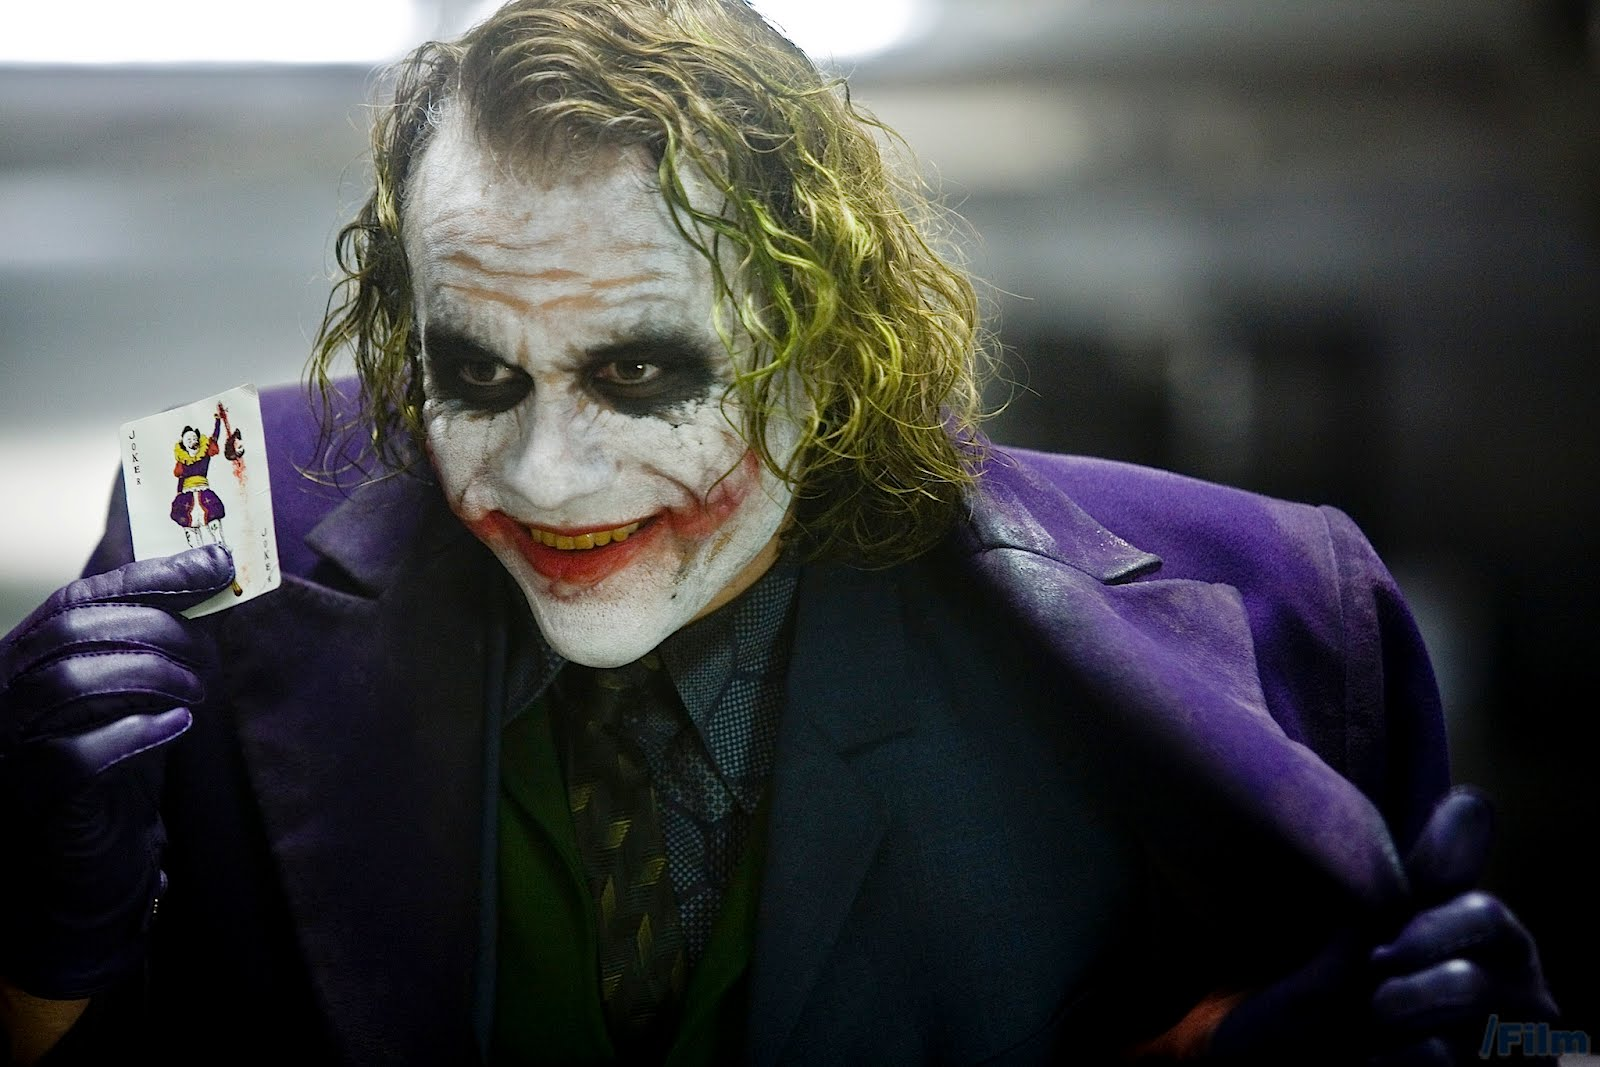 http://2.bp.blogspot.com/-3ggjV0sbXDE/UCCokGn3eSI/AAAAAAAABd0/hFCzbRTf-HE/s1600/the_dark_knight_heath_ledger_joker.jpg